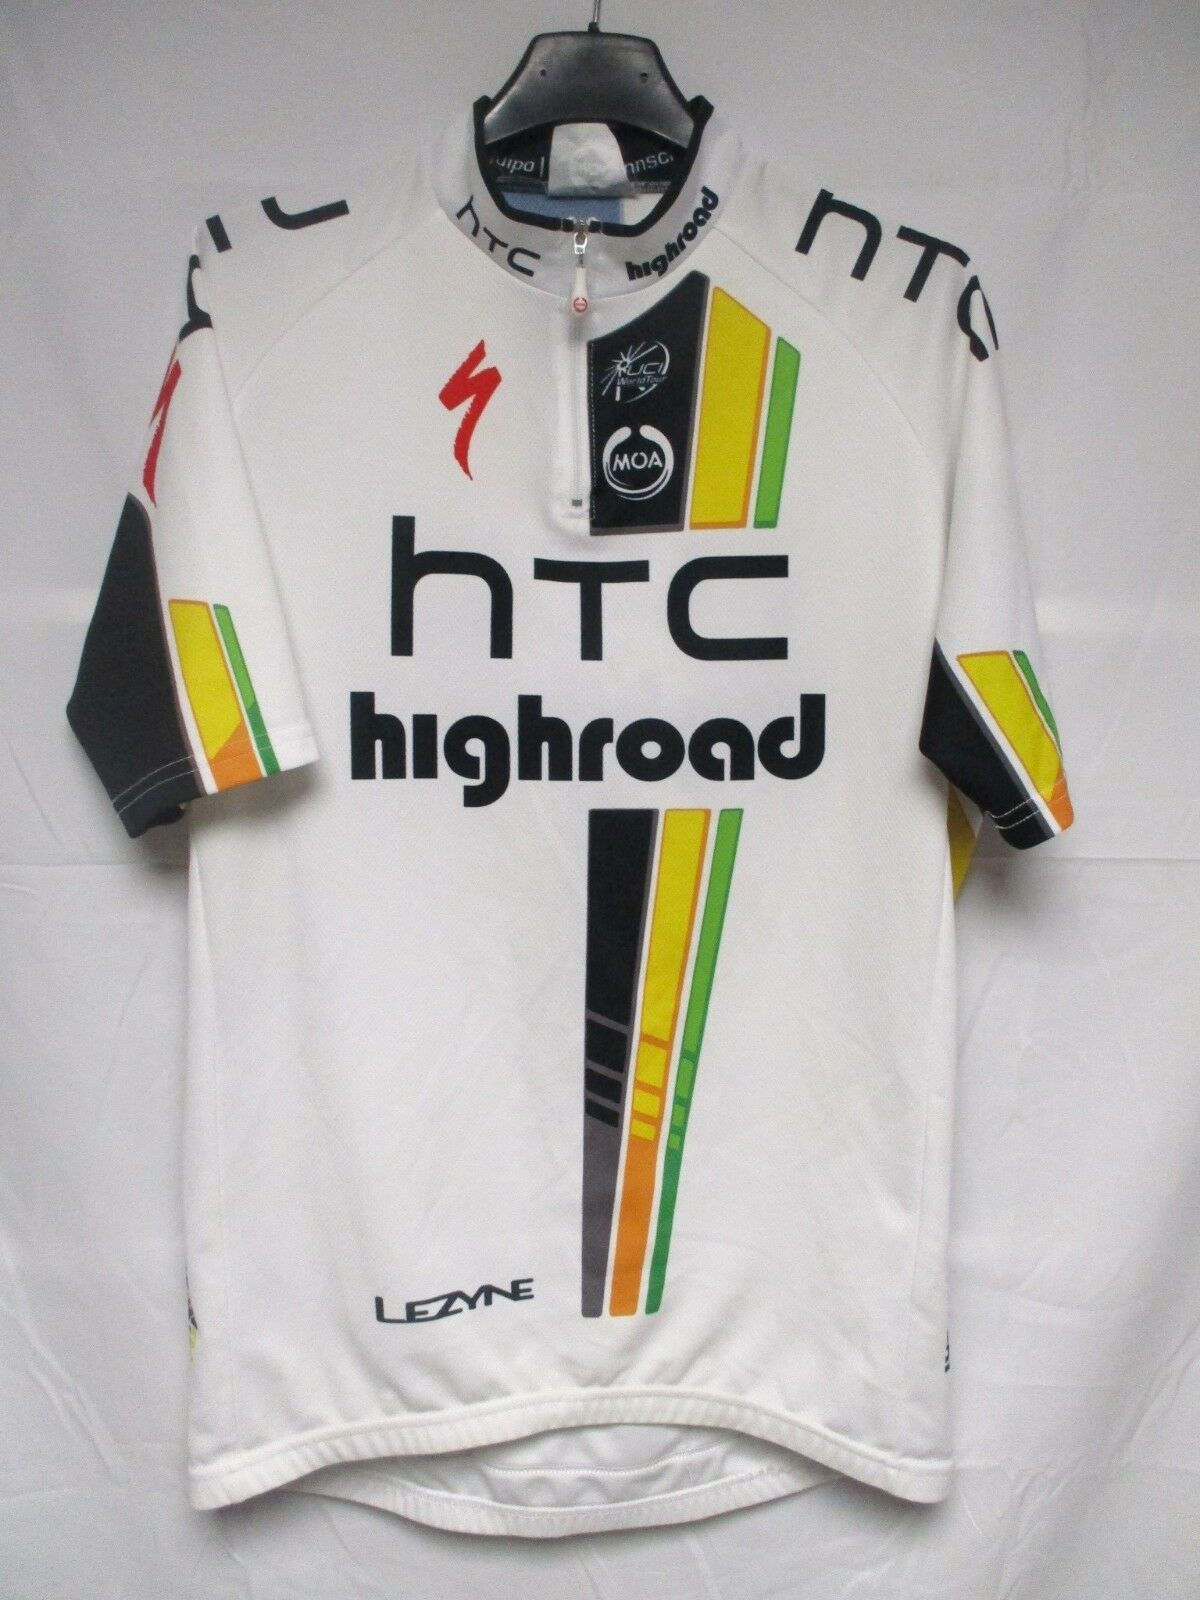 Maillot CAVENDISH HTC HIGHROAD shirt Tour France 2011 MARTIN CAVENDISH Maillot PINOTTI trikot 5 XL d46188